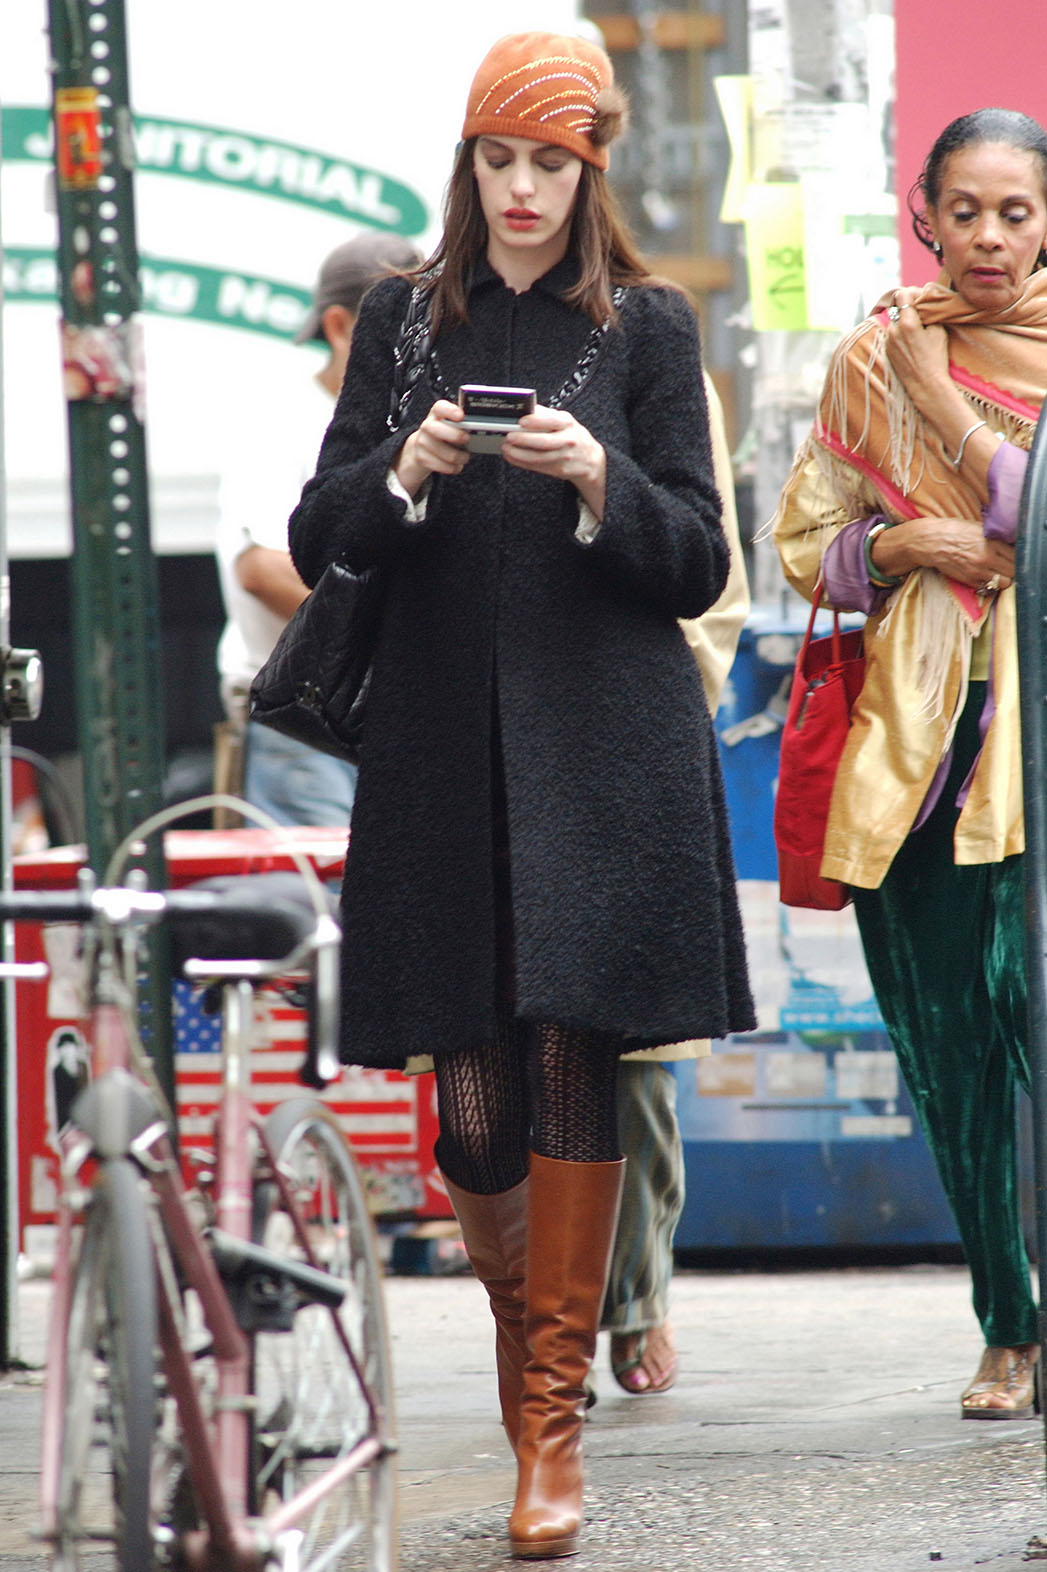 10 Memorable Anne Hathaway Outfits From The Devil Wears Prada Hollywood Reporter